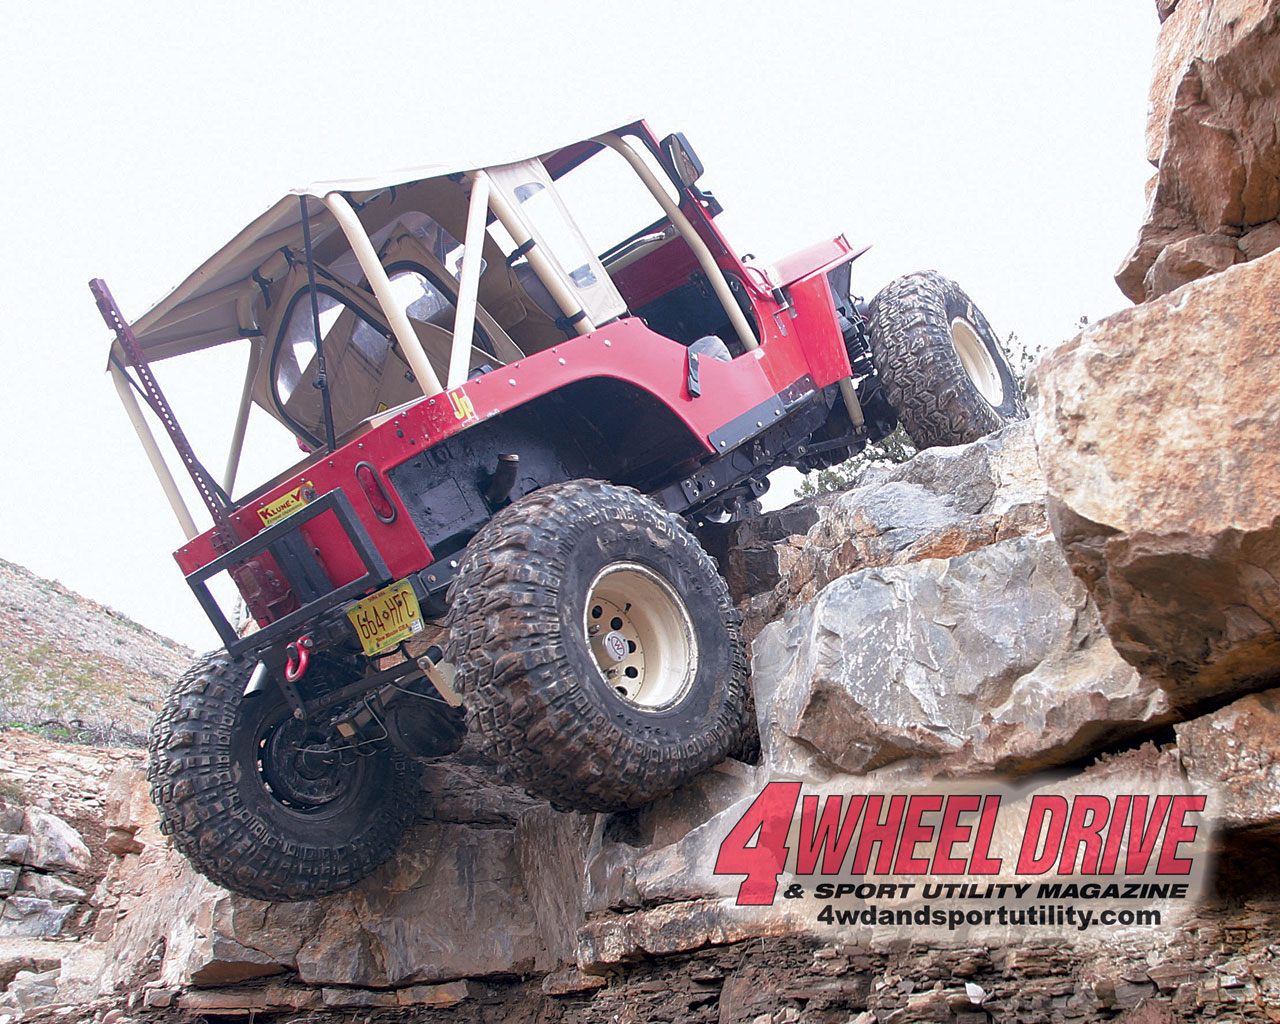 0507 4wd+chili challenge red flatfender+large